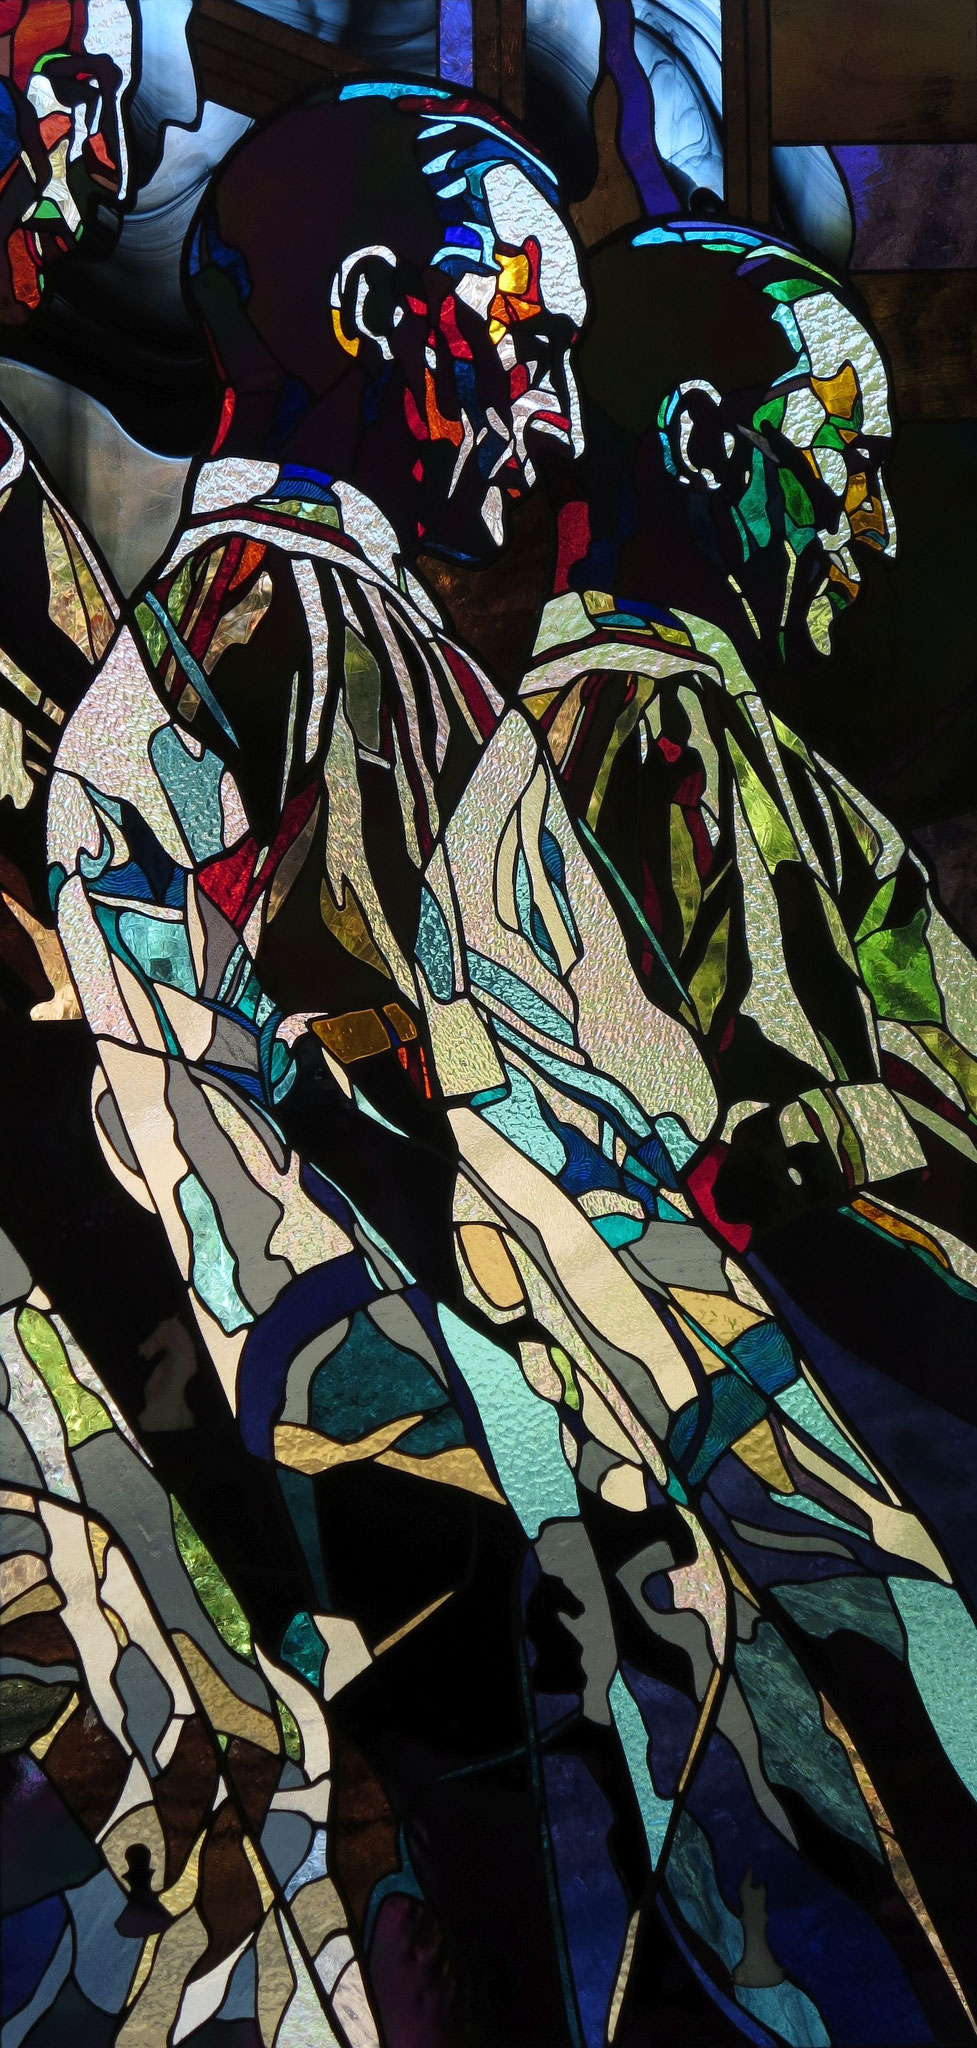 MARCEL DUCHAMP_25 x 51 inches stained glass, photo by Hadyn Butler